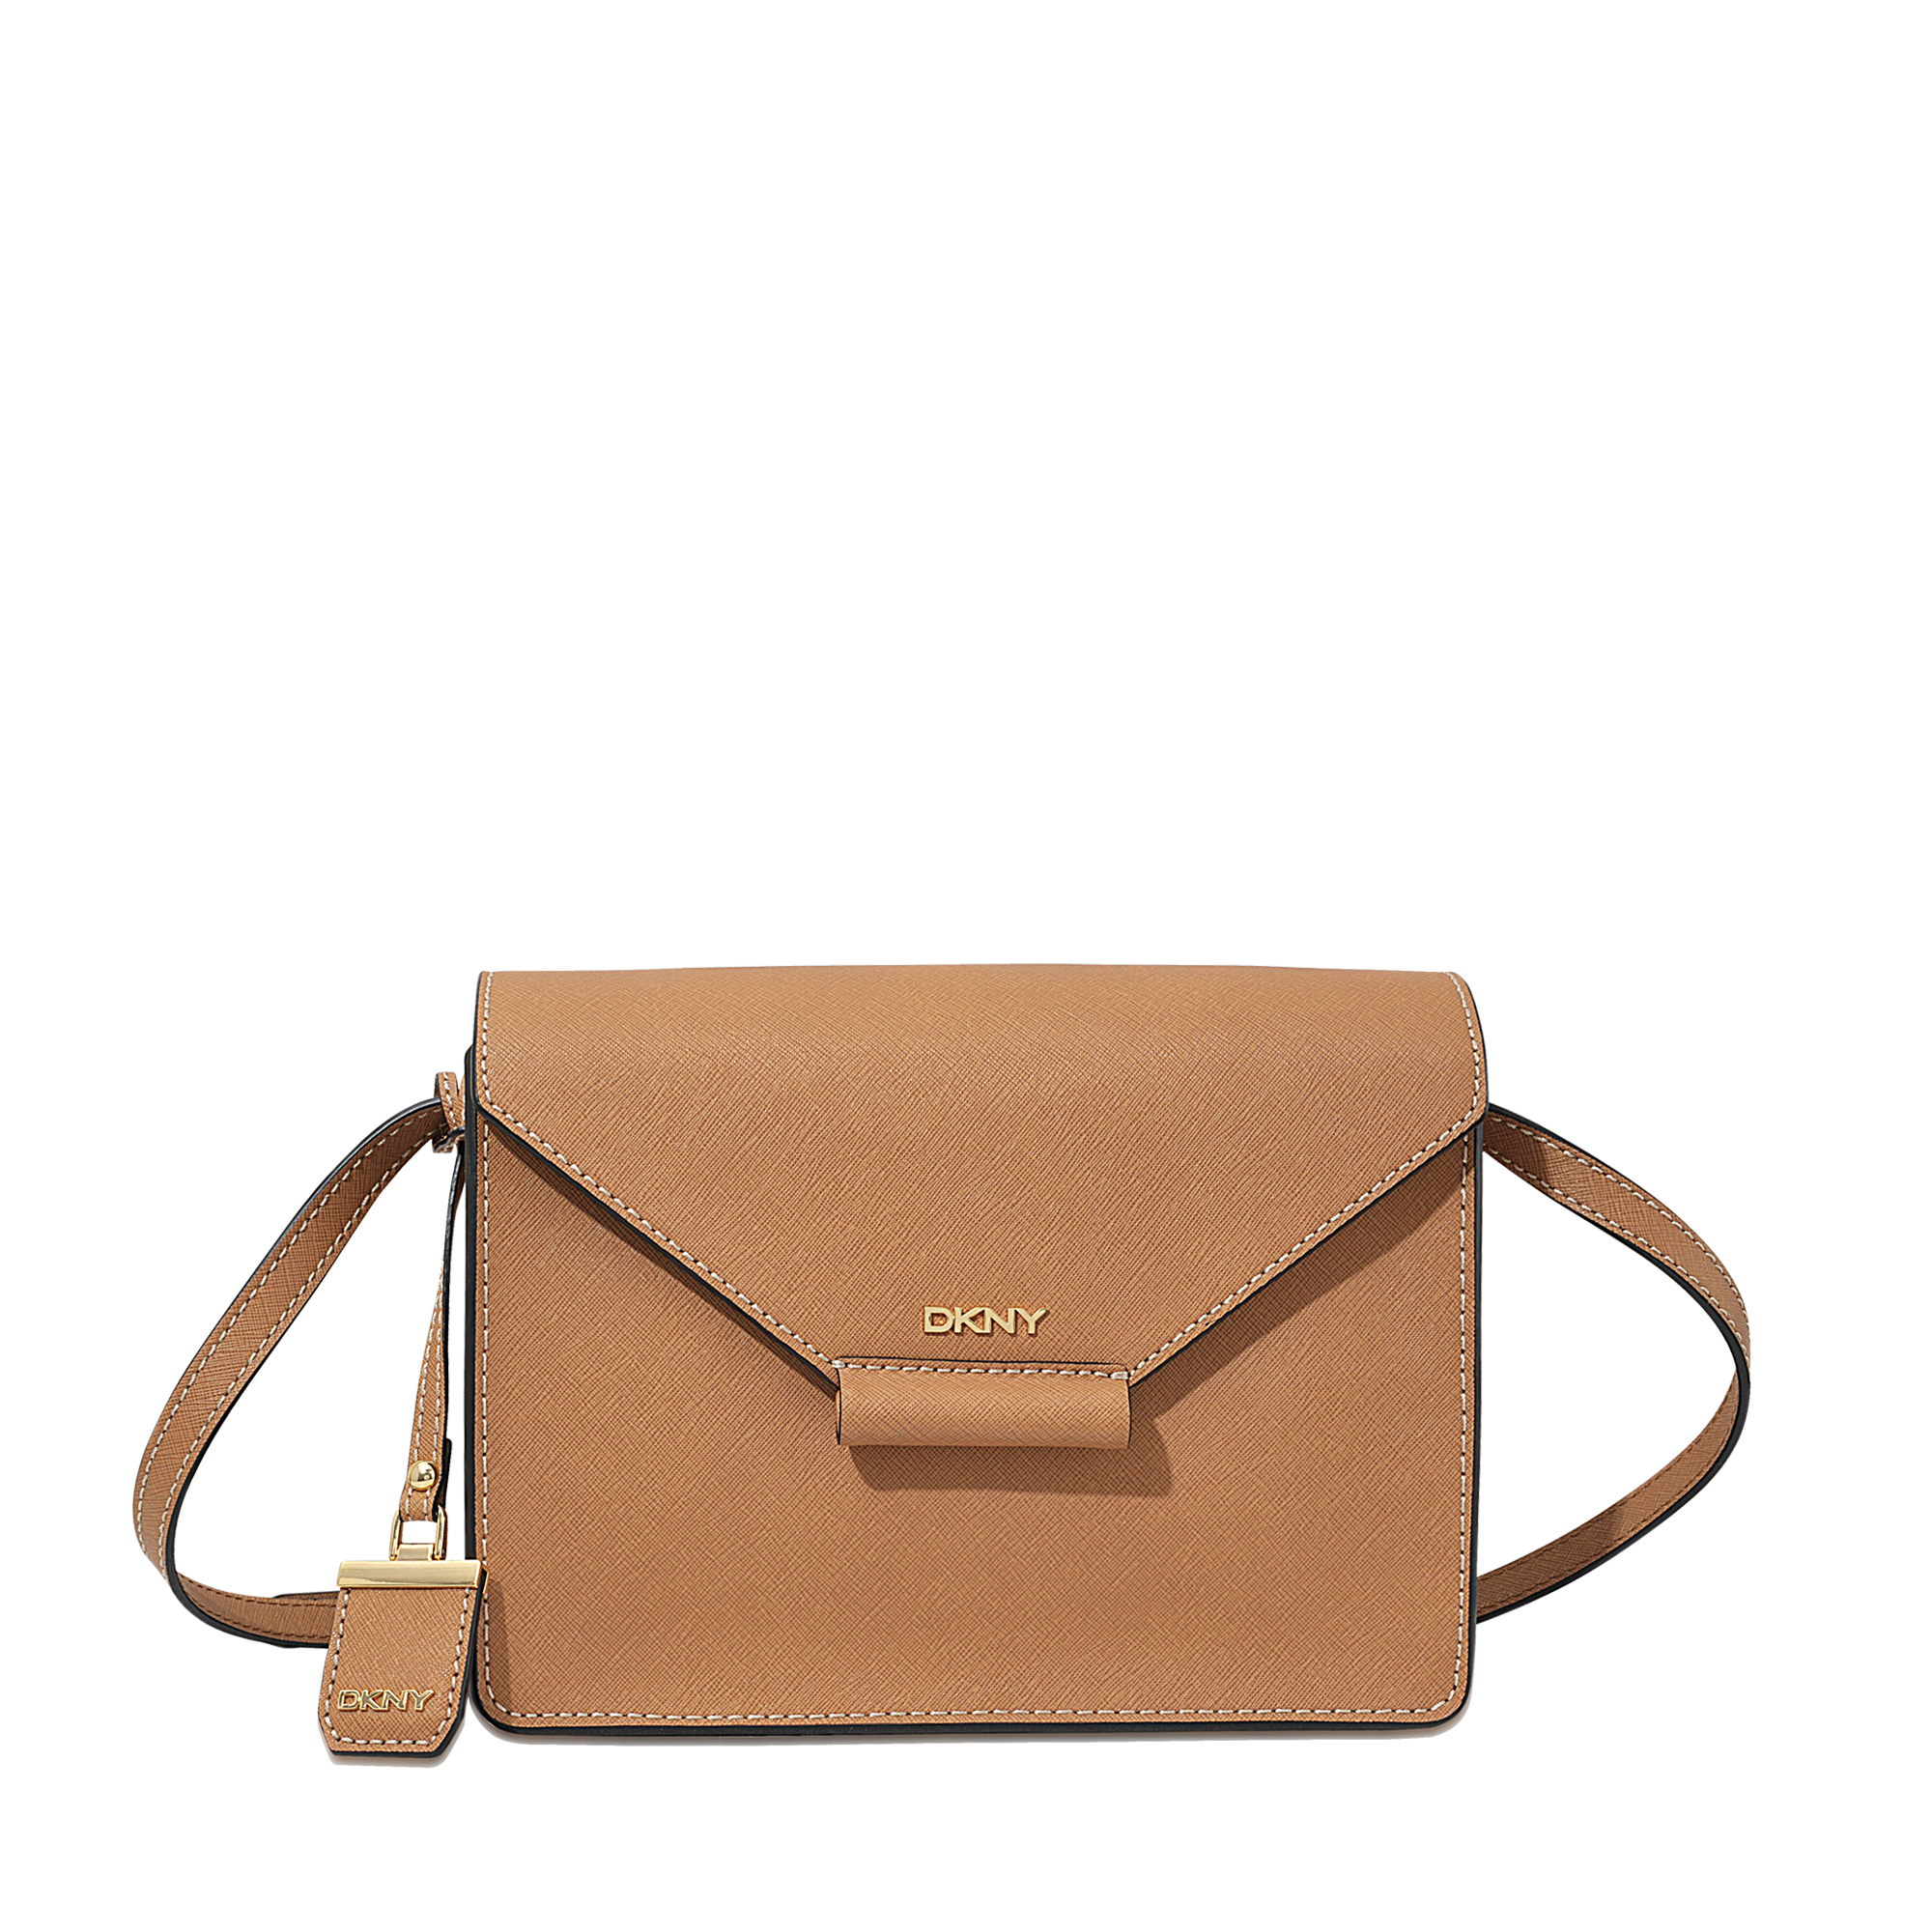 e698510baa ... online store 3fce8 f8b48 Lyst - Dkny Bryant Park Edge Flap Crossbody Bag  in Brown ...